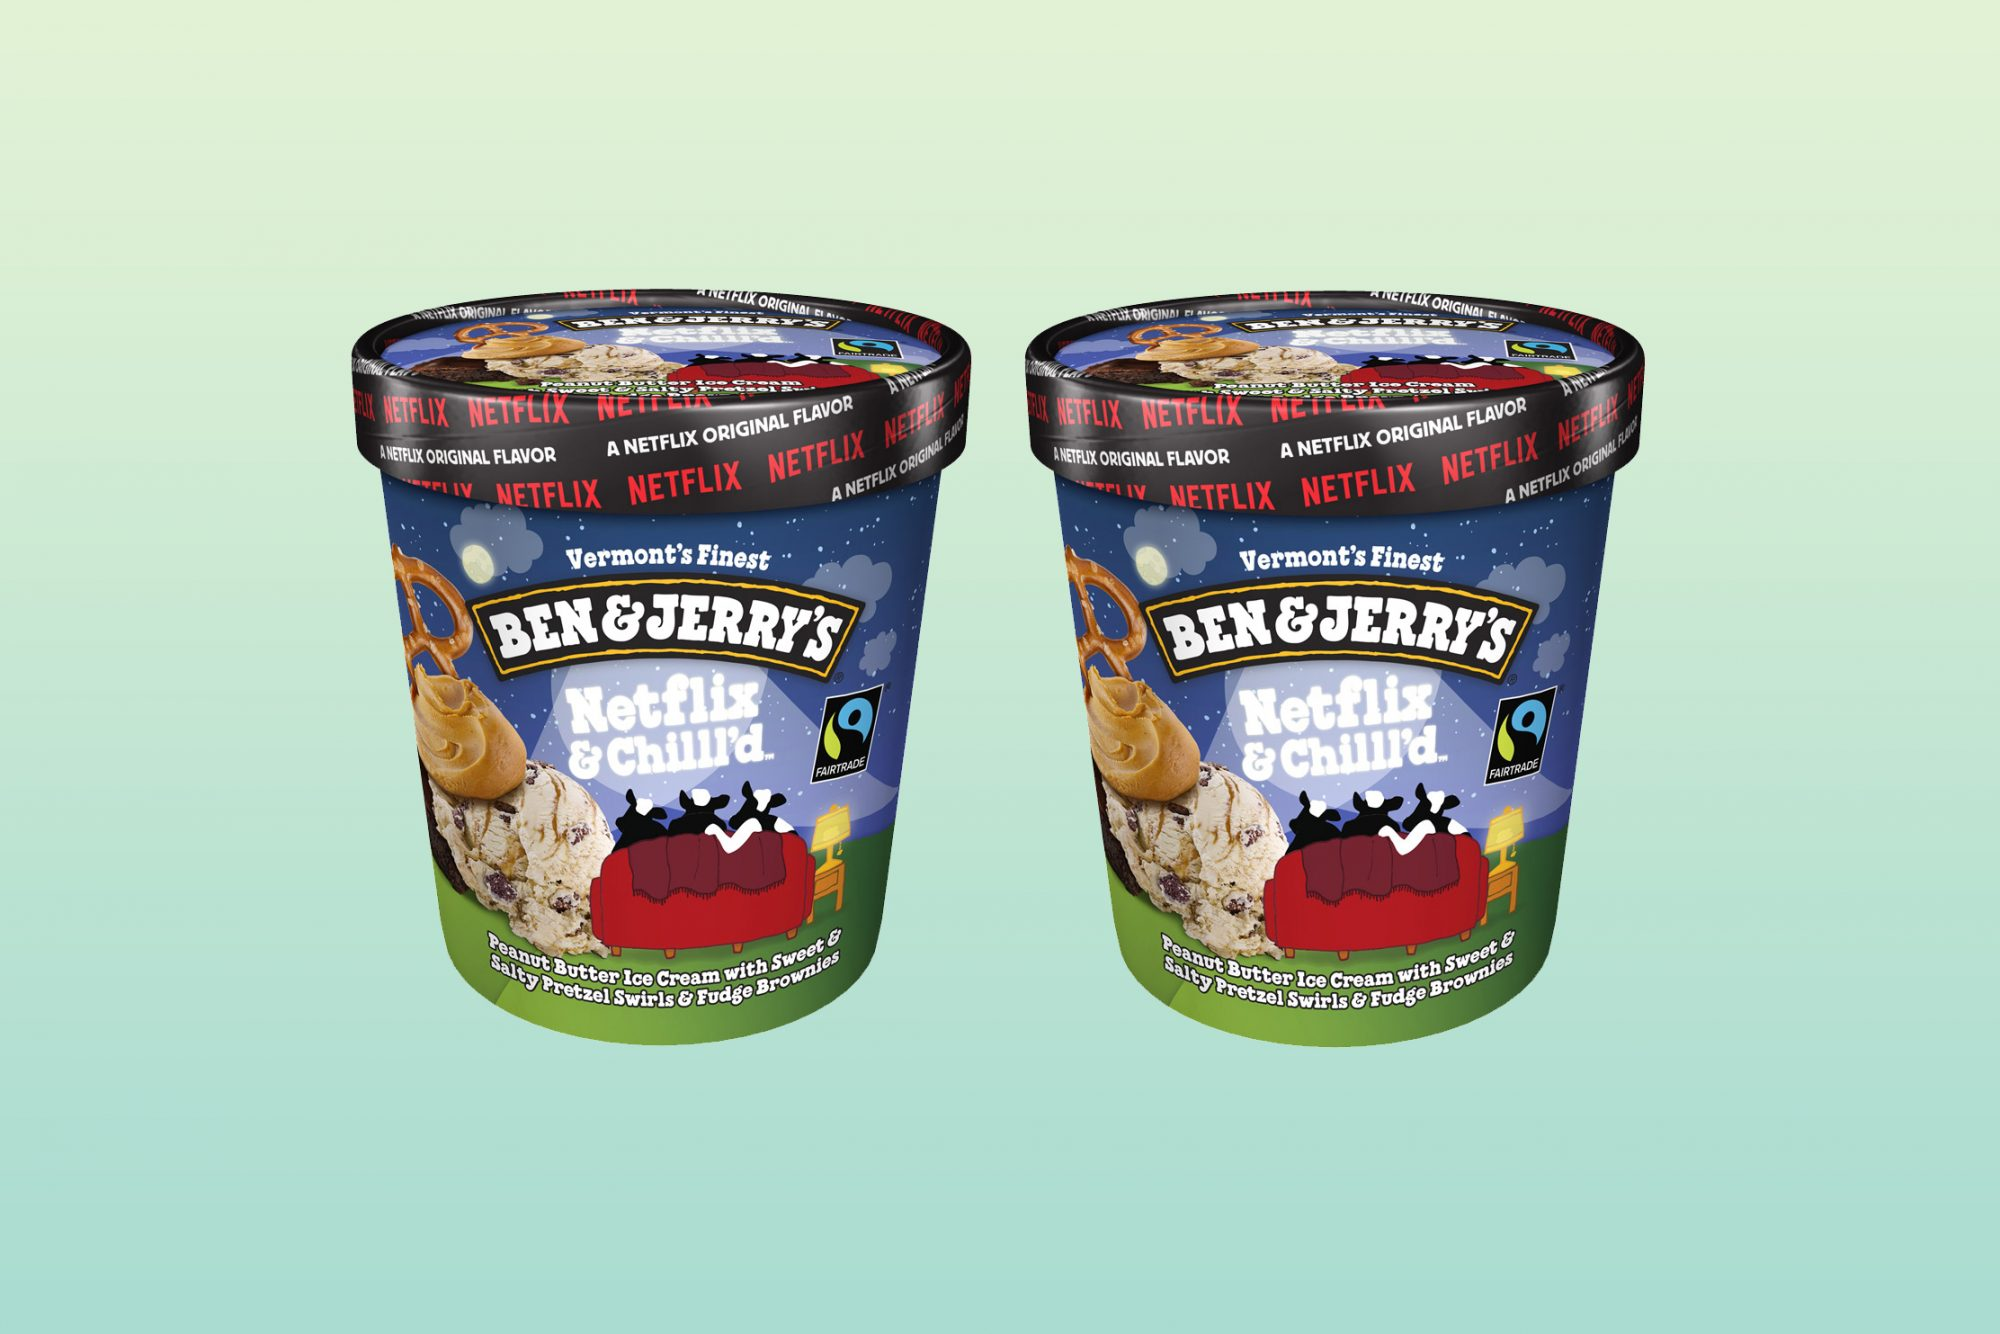 Ben and Jerry's Netflix and Chill'd Ice Cream Pints